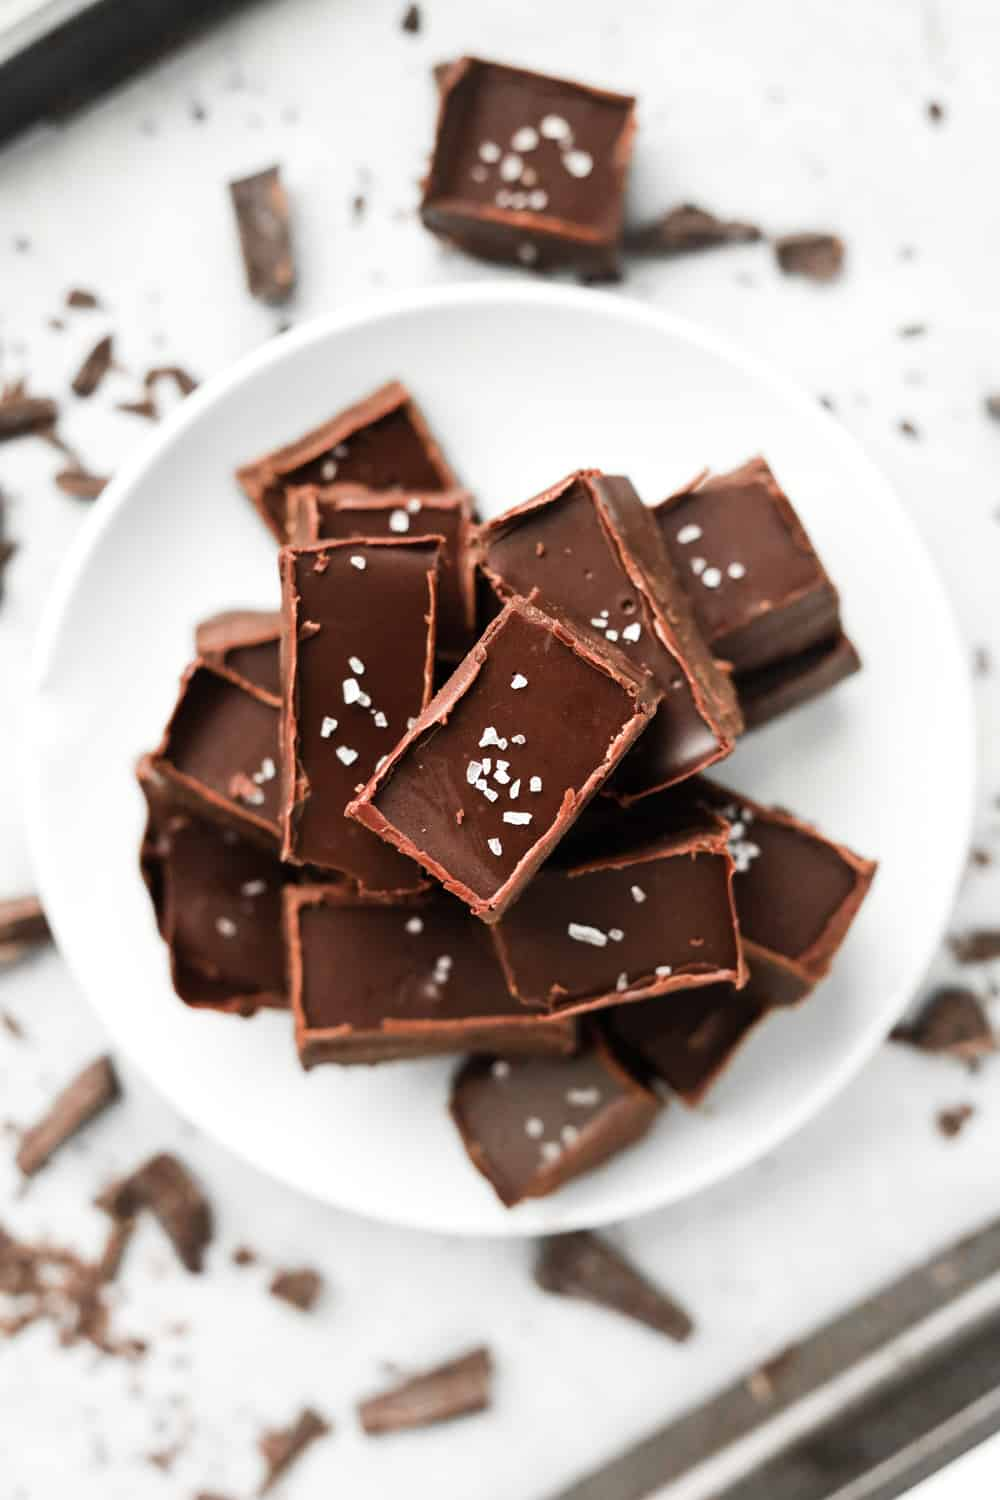 A pile of fudge on a white plate.